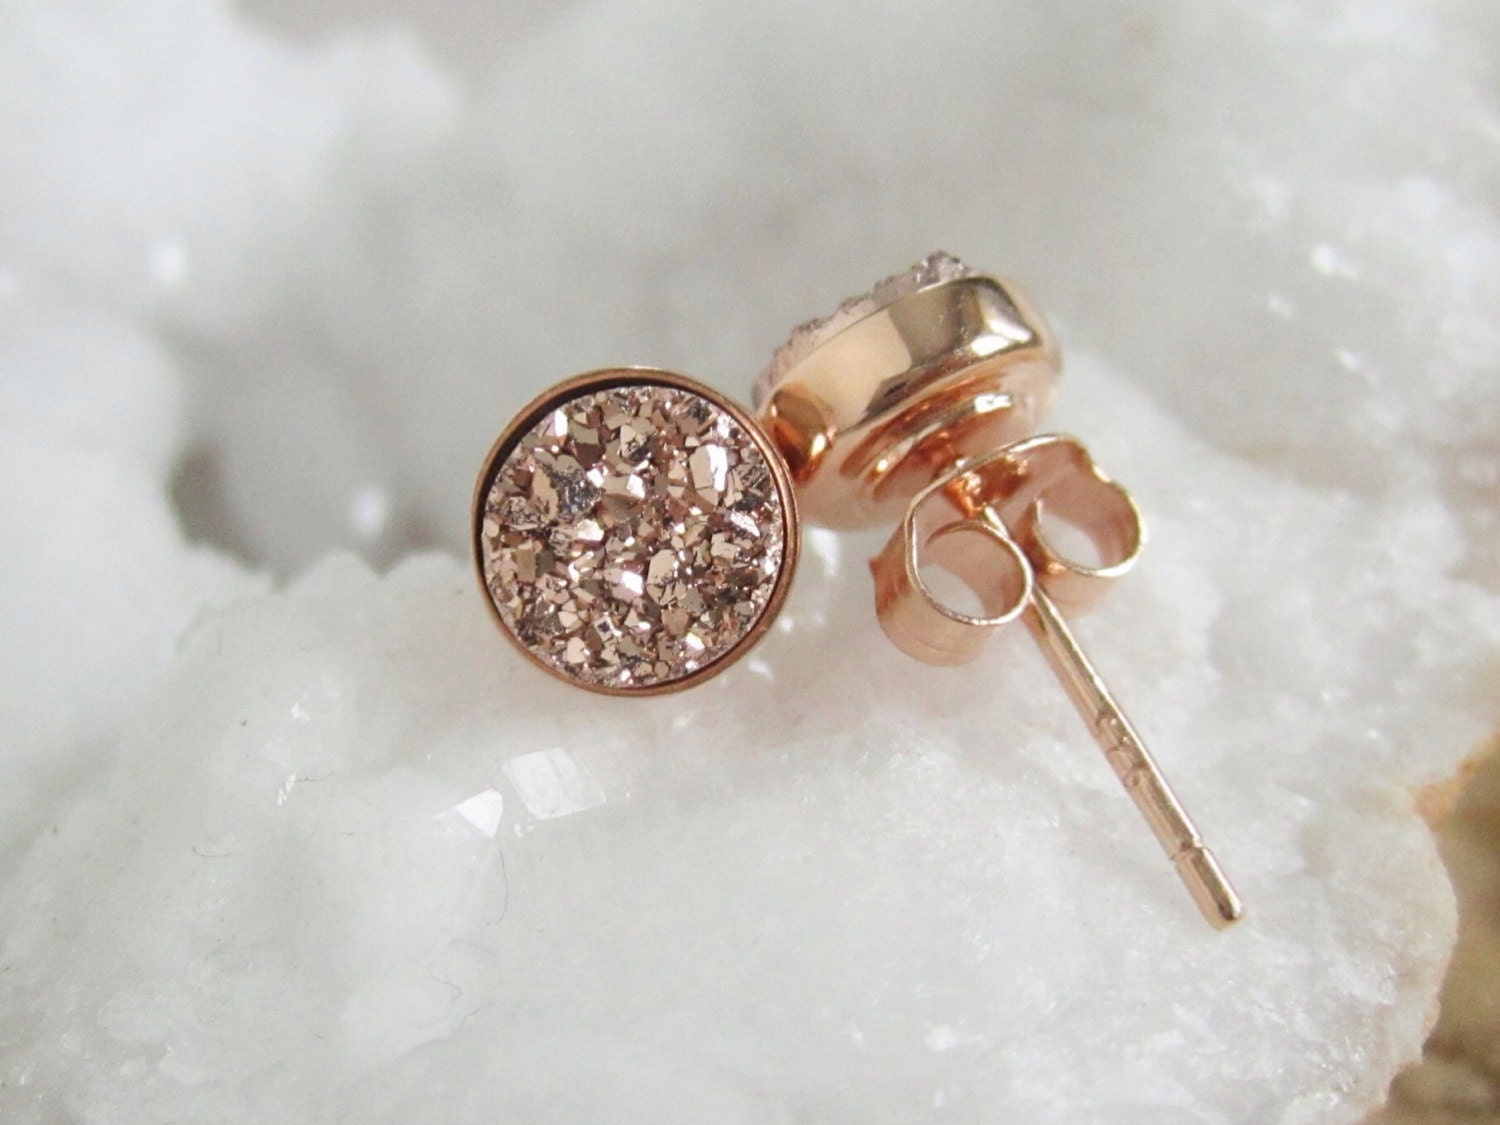 Druzy Earrings Druzy Earrings Studs Stud Earrings Rose Gold